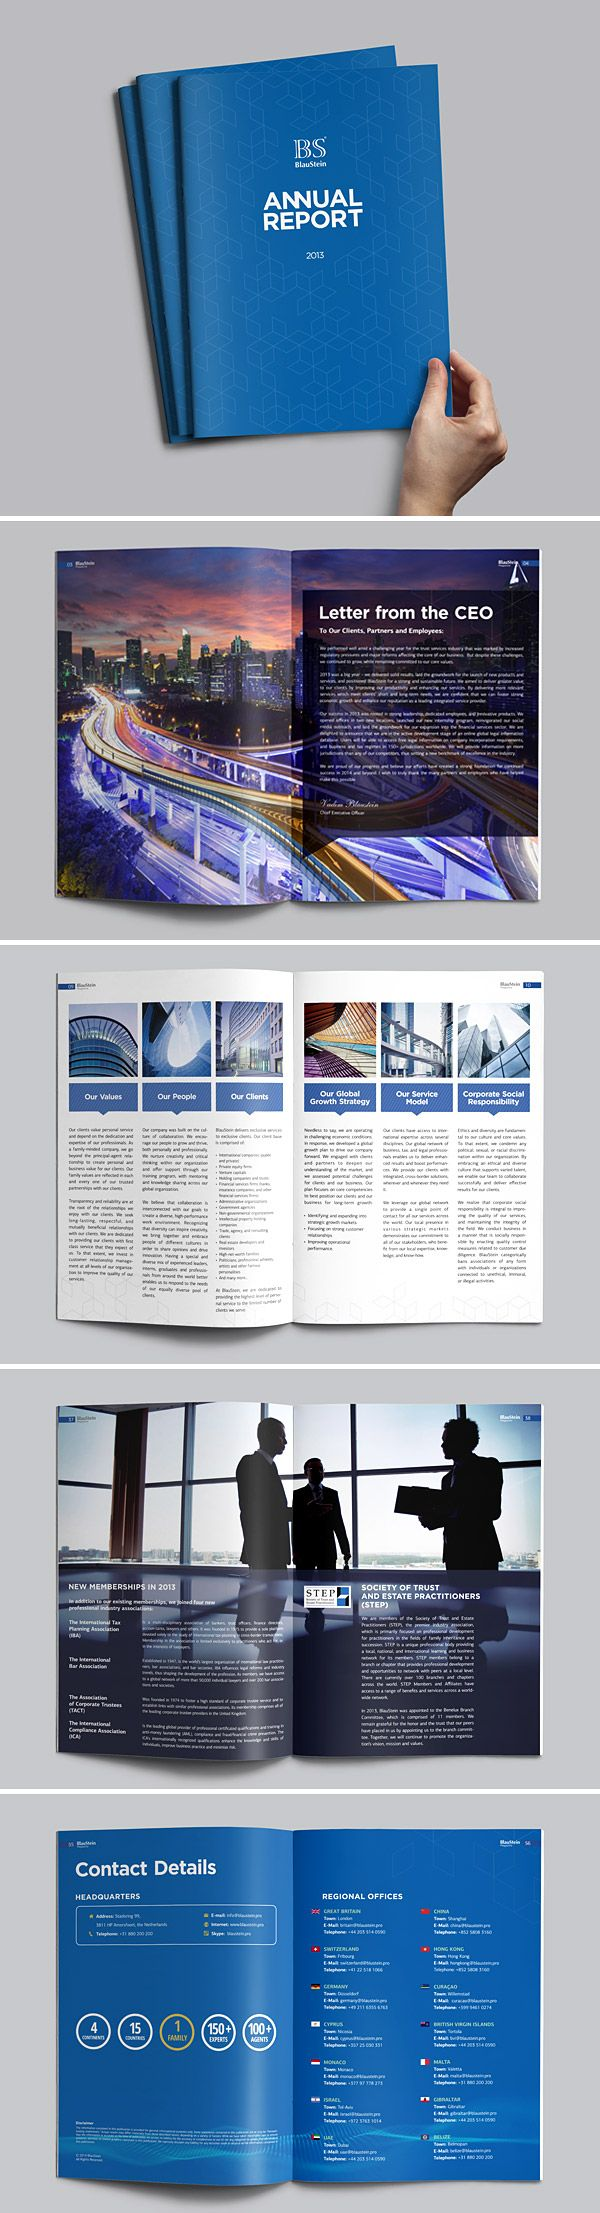 blue annual report brochure